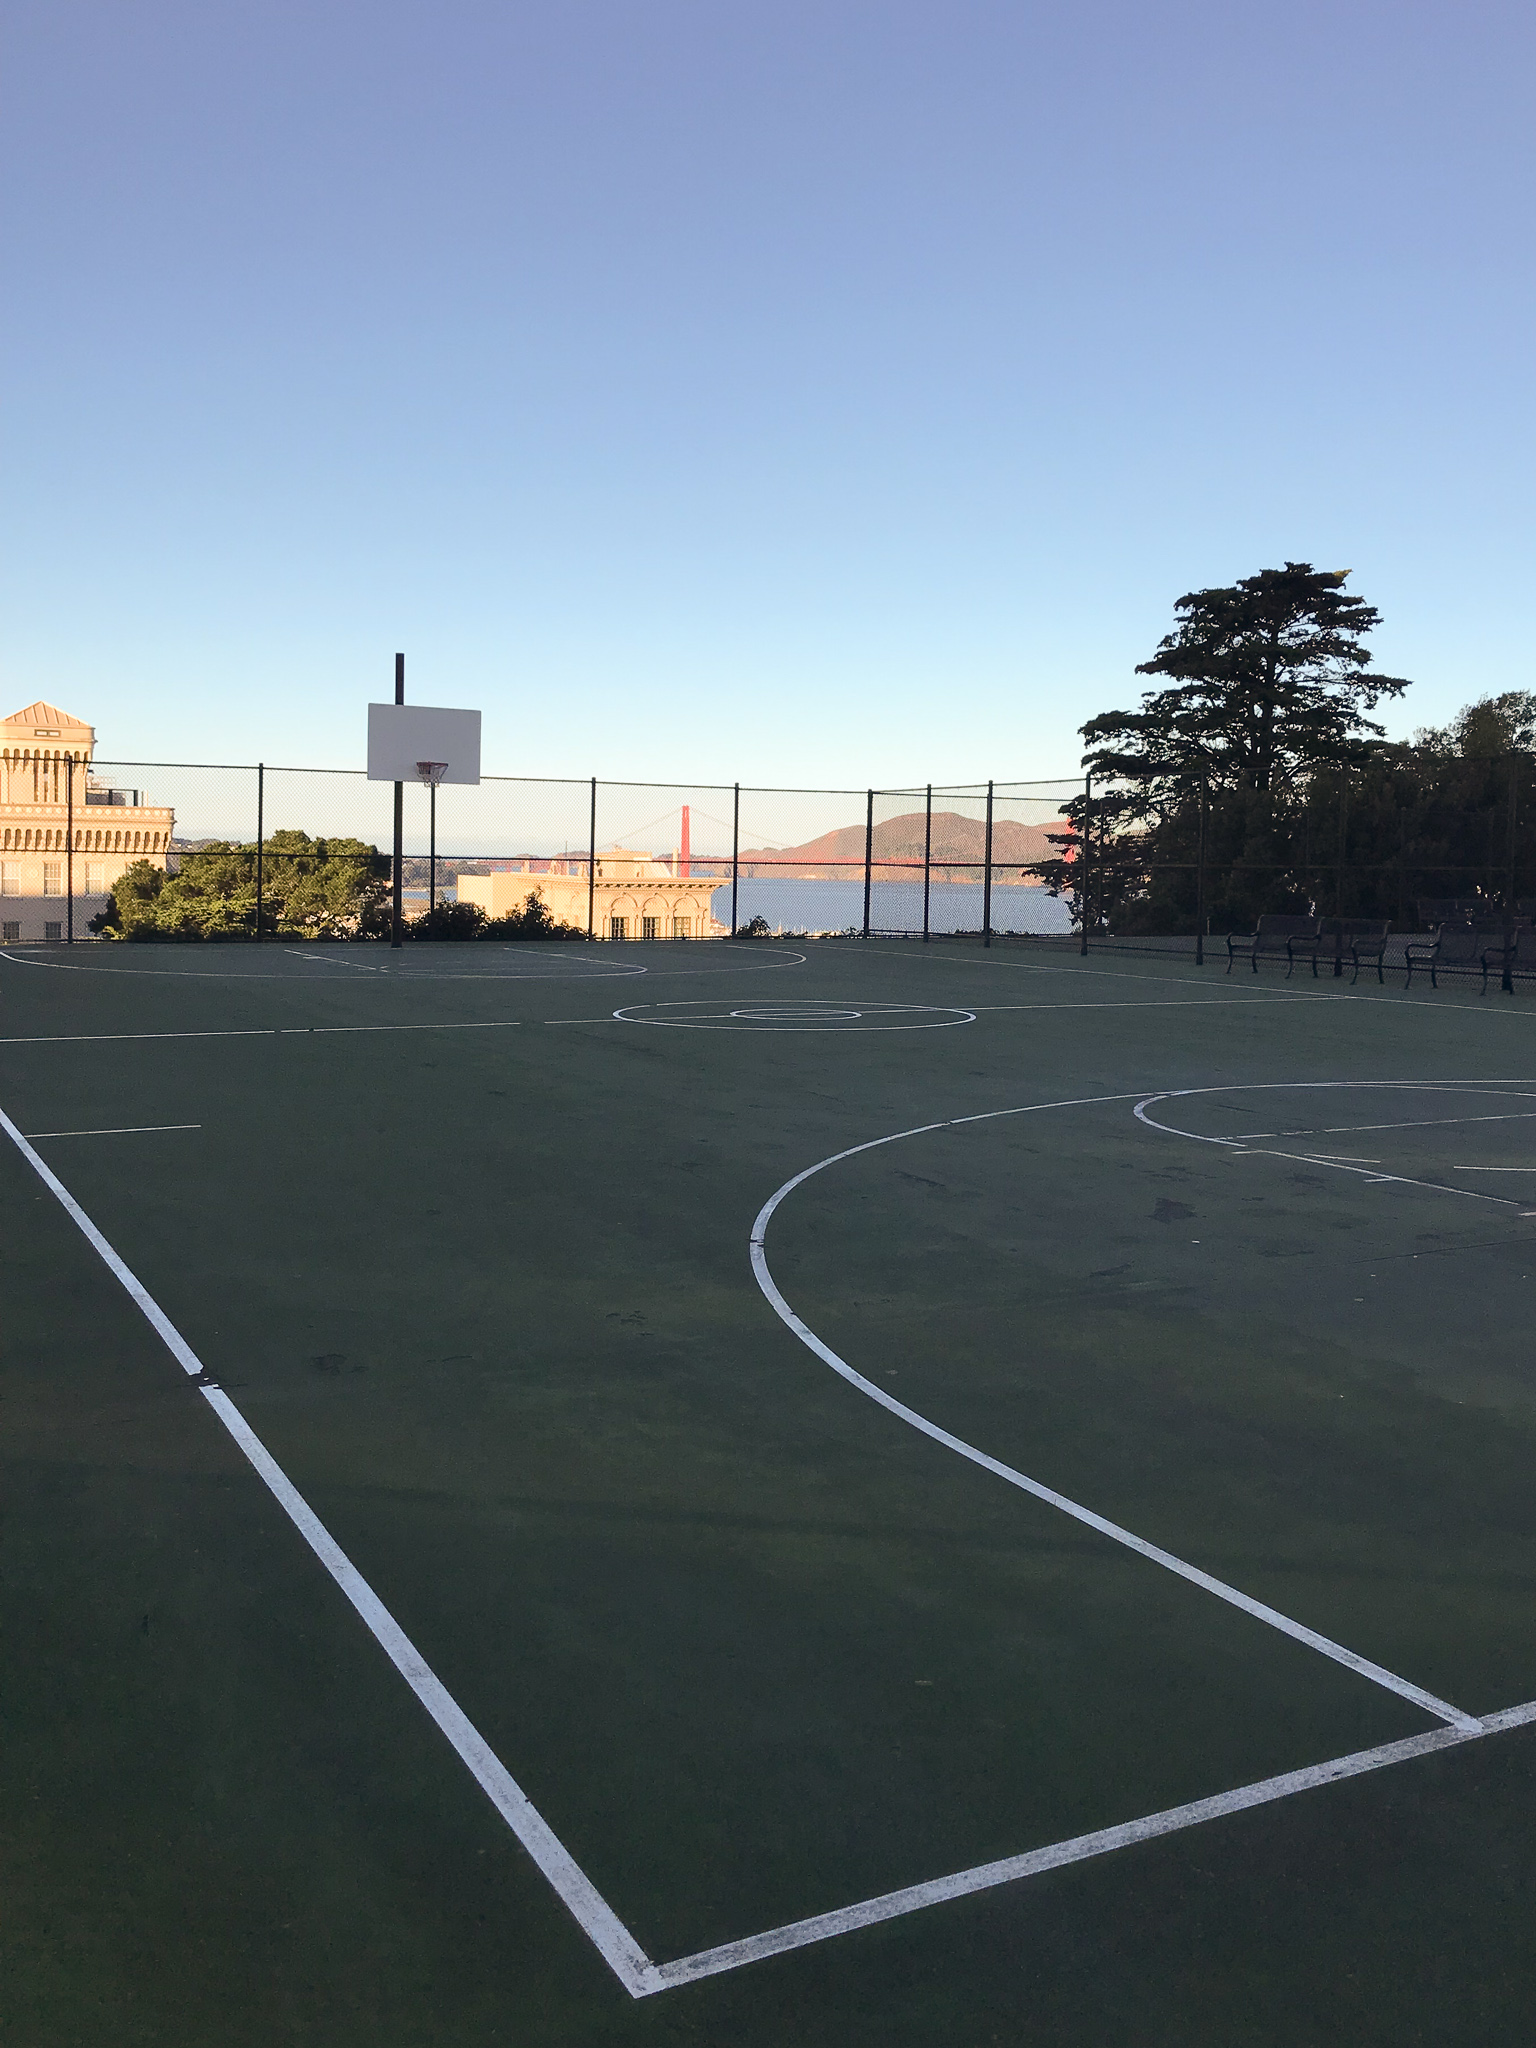 Coolest basketball courts in America